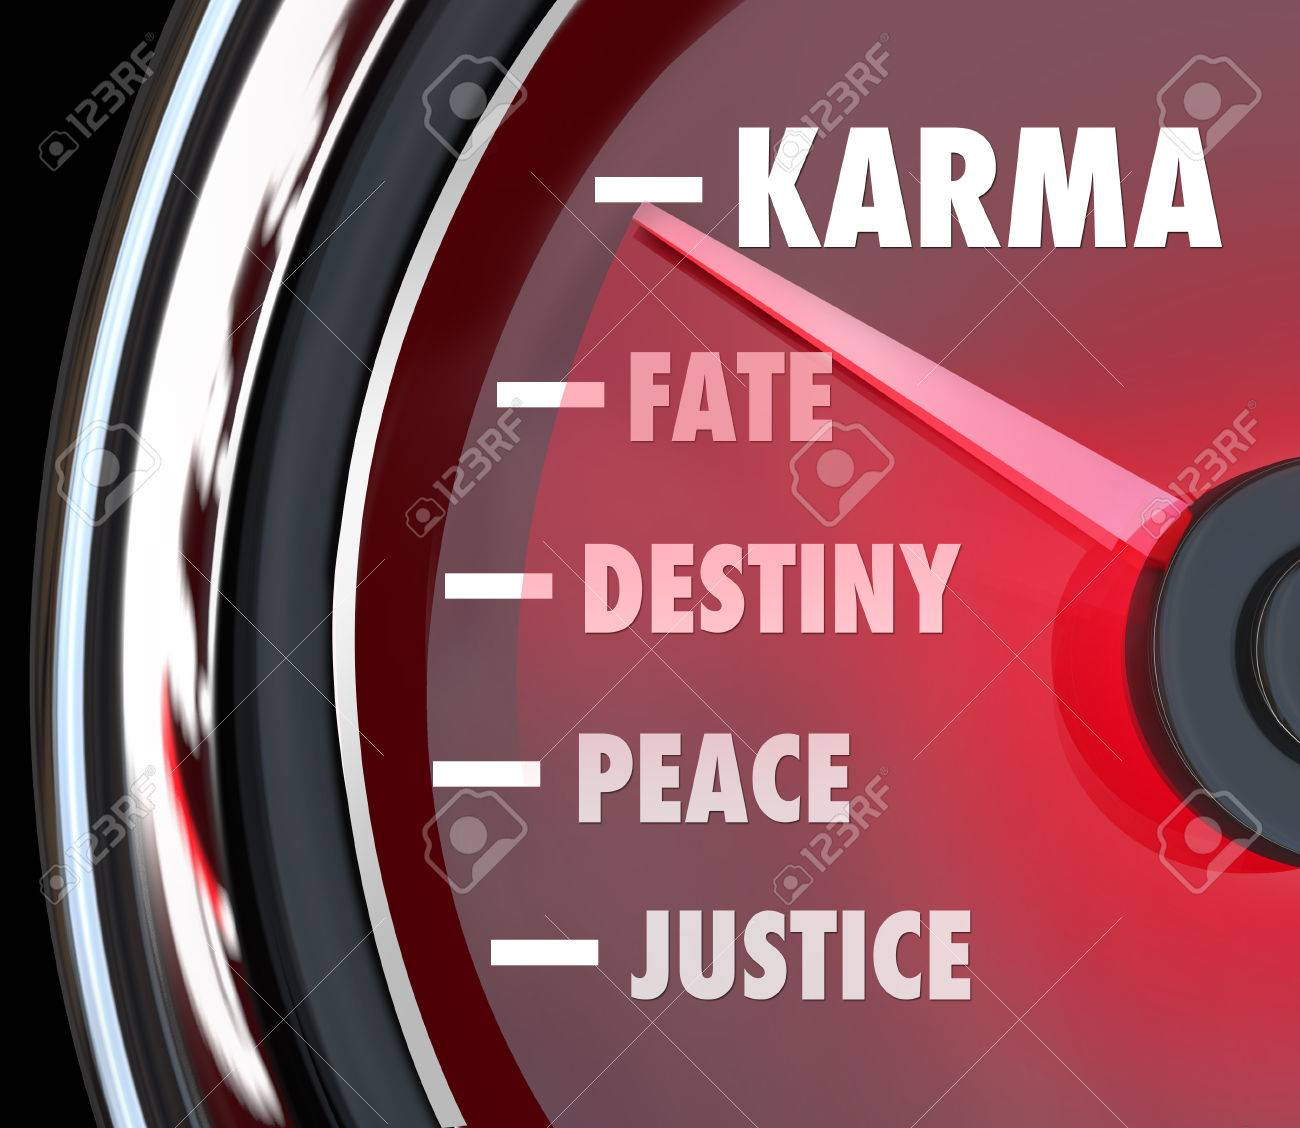 Karma and related words like justice, peace, destiny and fate on a speedometer Stock Photo - 26582484